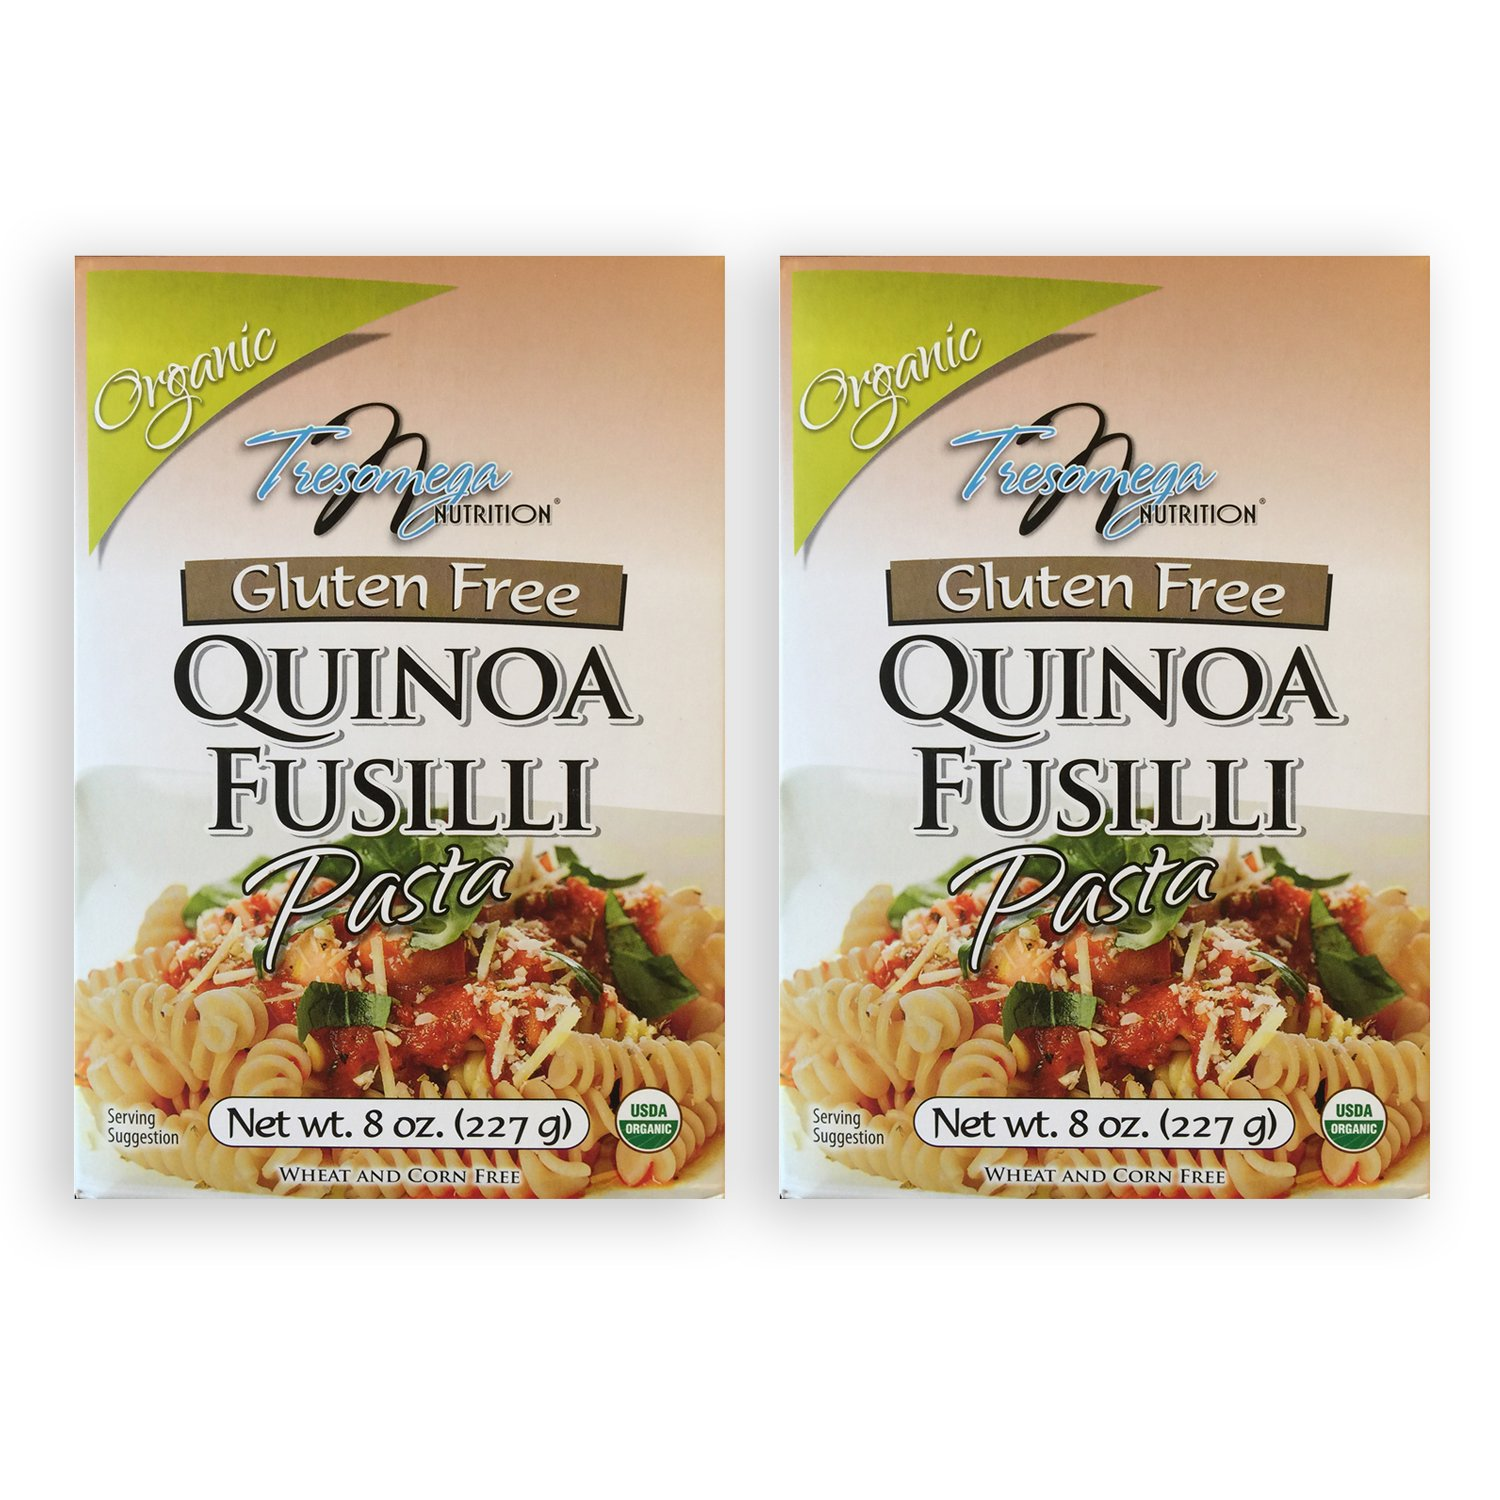 TresOmega Nutrition–Organic Quinoa Fusilli Pasta–Made with Organic Quinoa, Rice & Amaranth for A Meal High in Protein & Fiber– 2, 8 oz. Boxes